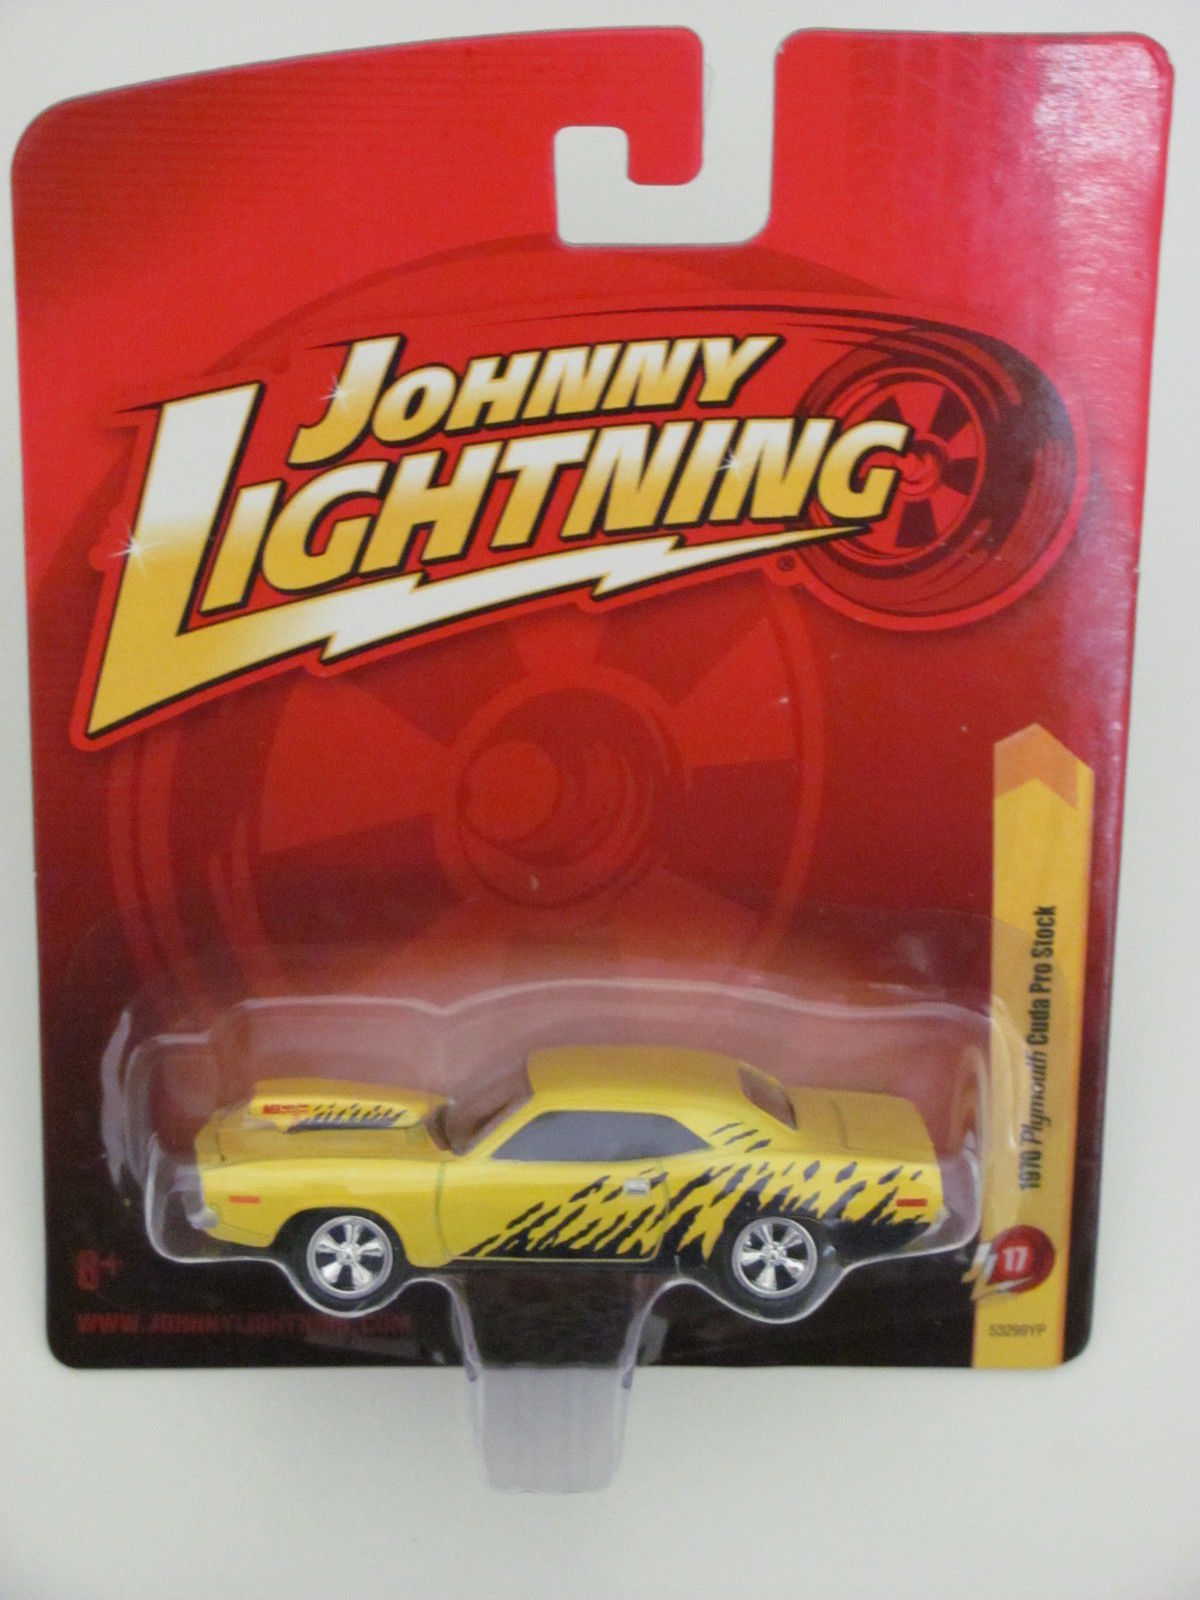 JOHNNY LIGHTNING 1970 PLYMOUTH CUDA PRO STOCK YELLOW RL17